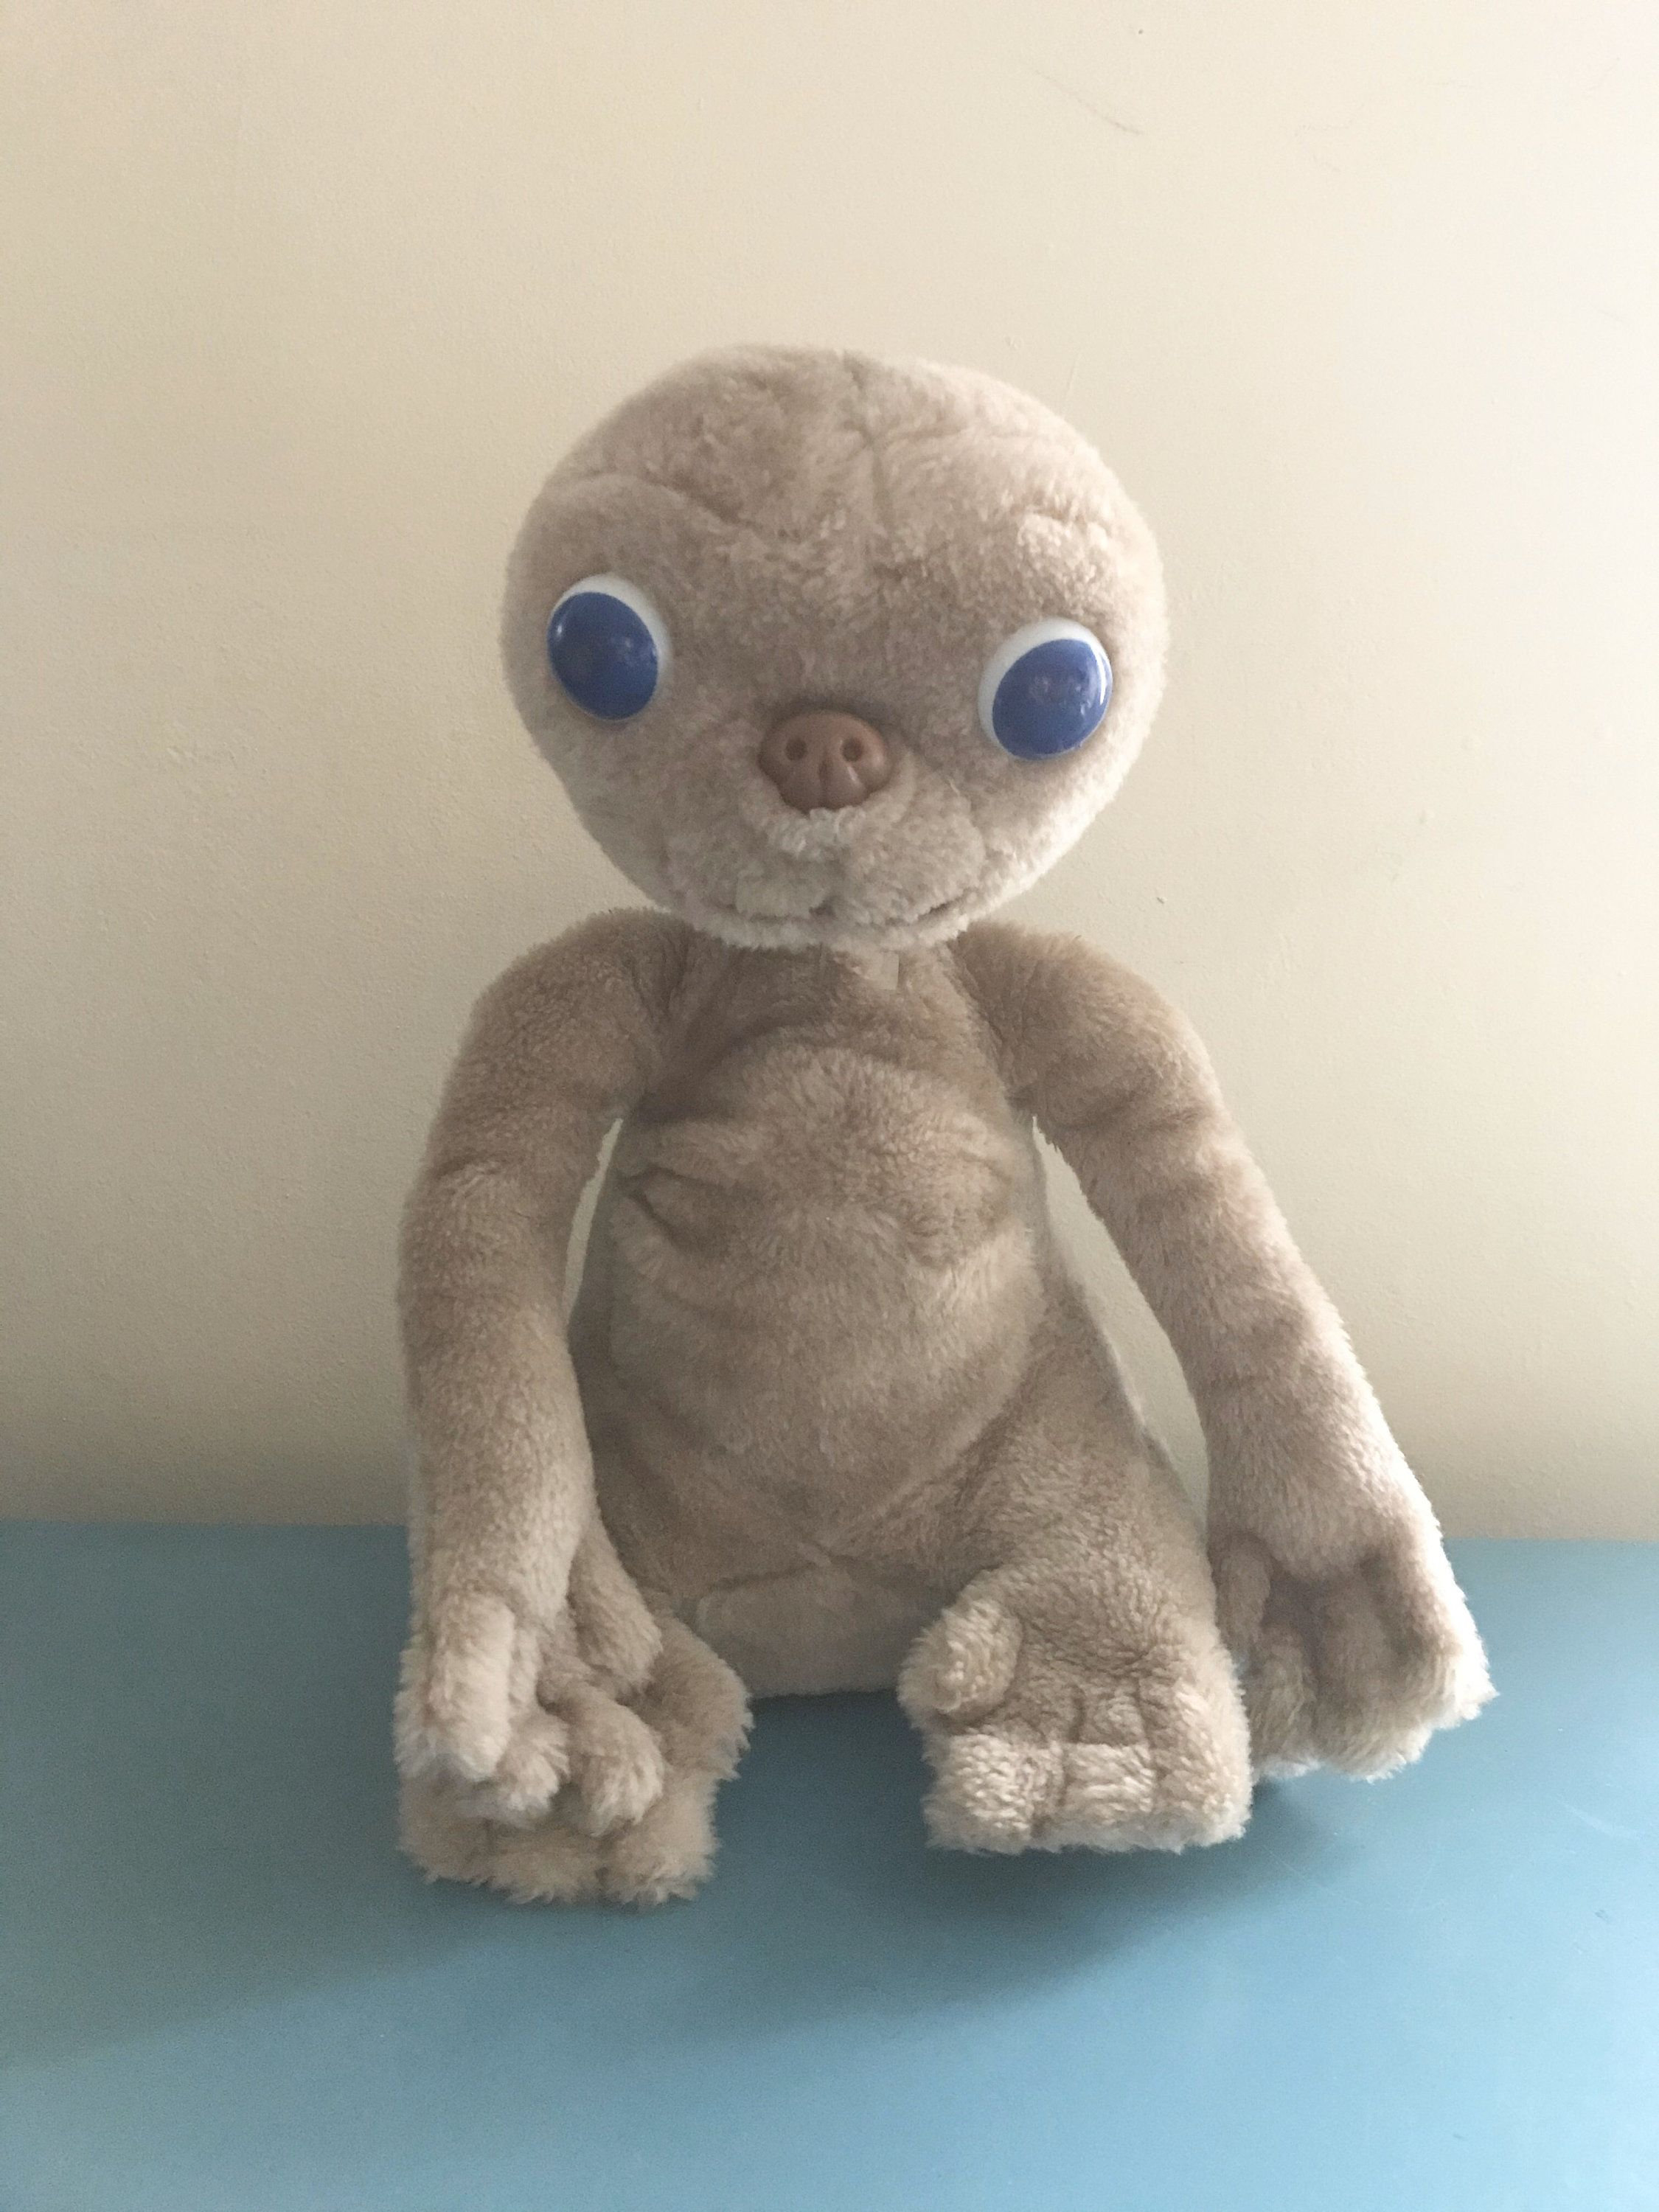 Vintage Et The Extraterrestrial Stuffed Plush Doll 80s Movies Retro Toys Retro Toys 80s Retro Toys Childhood Toys